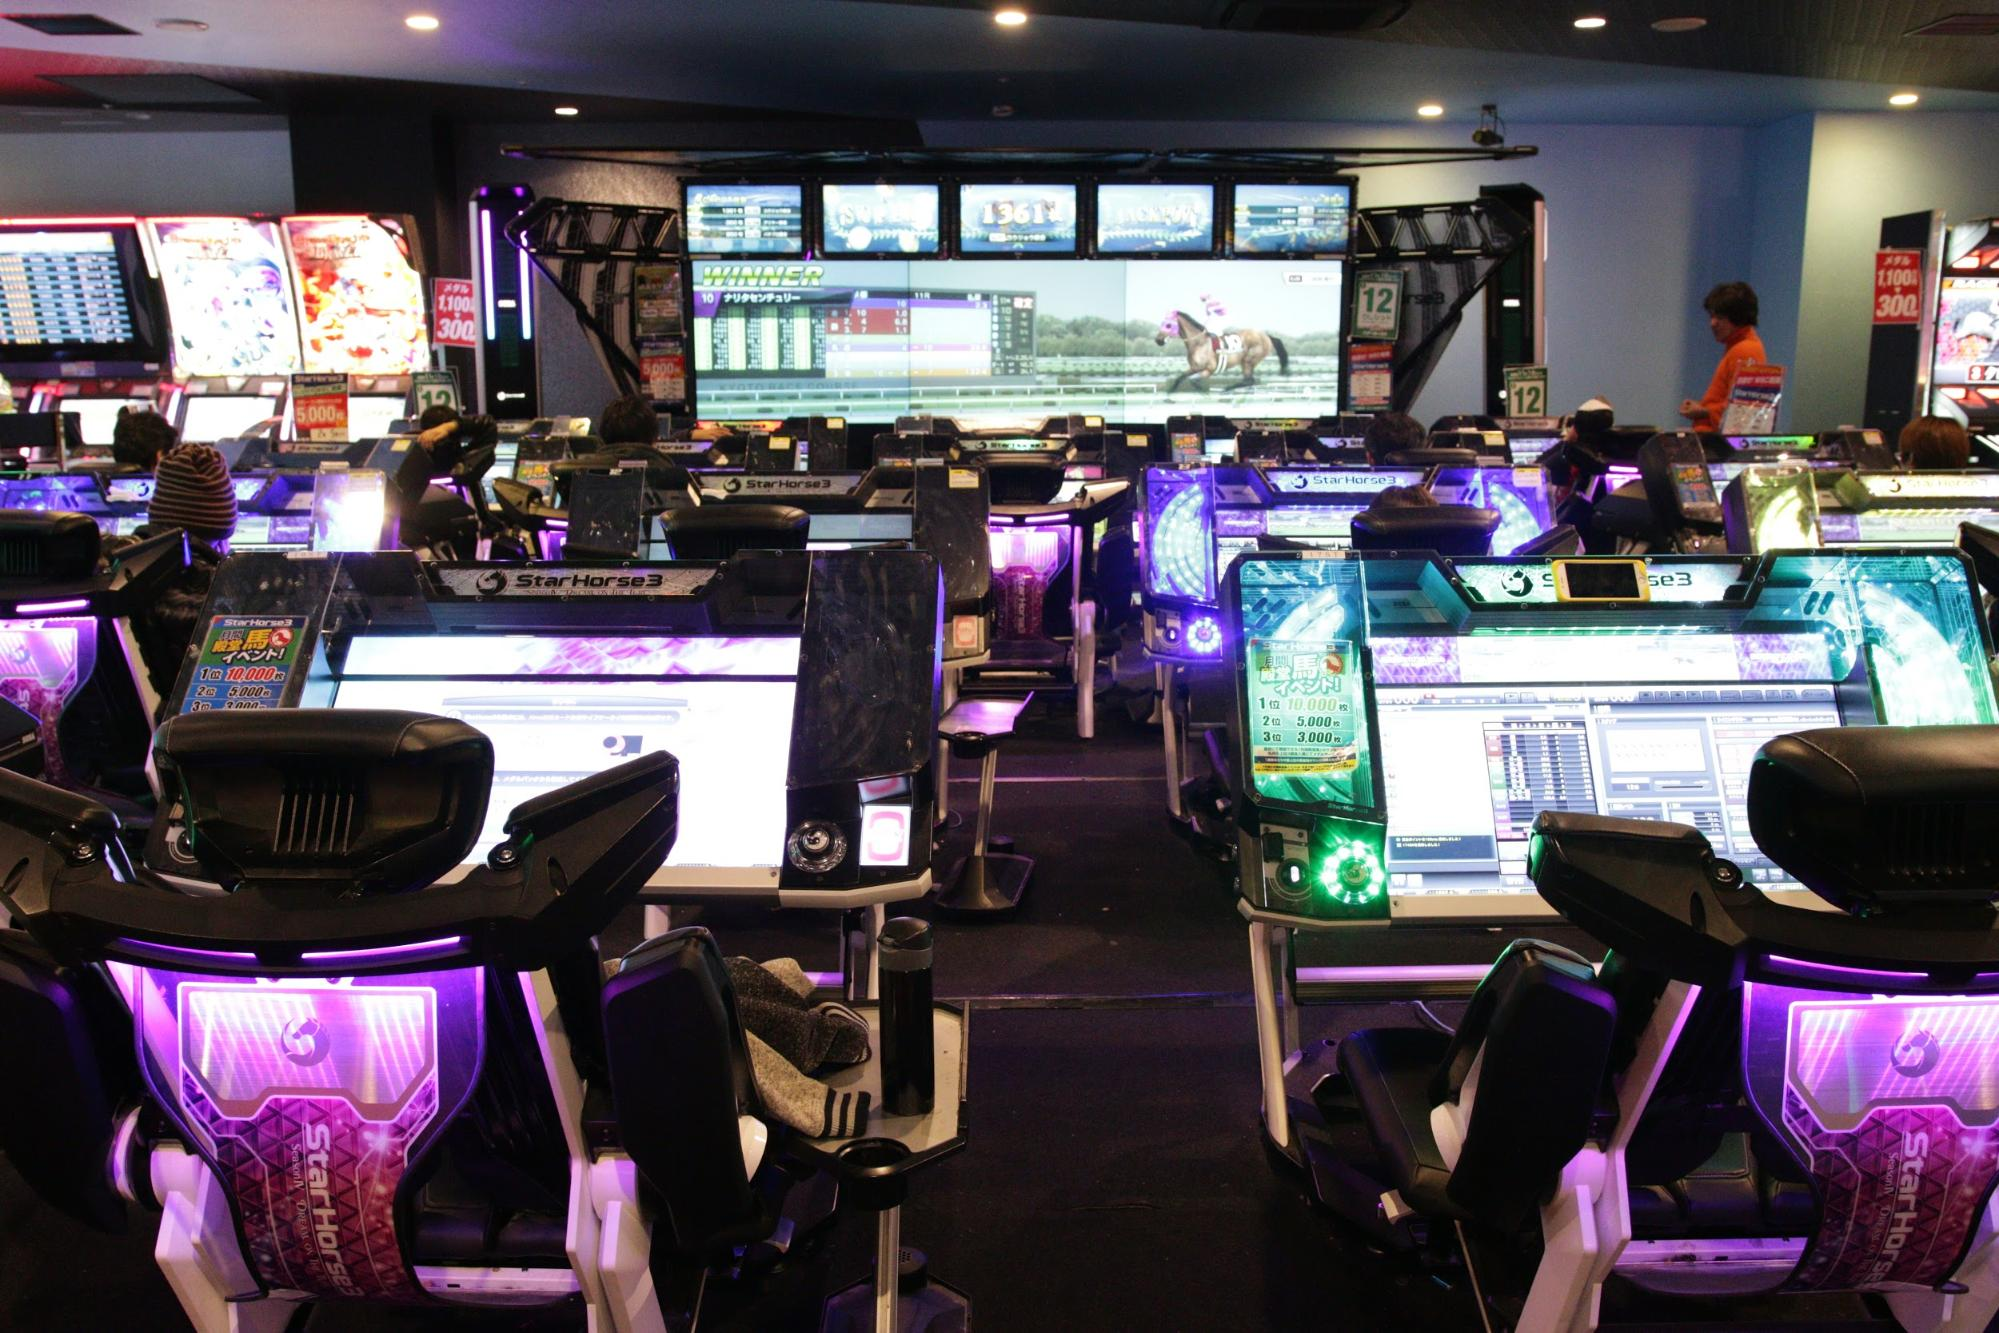 The Smart Local - Virtual horse betting and slot machines for gambling